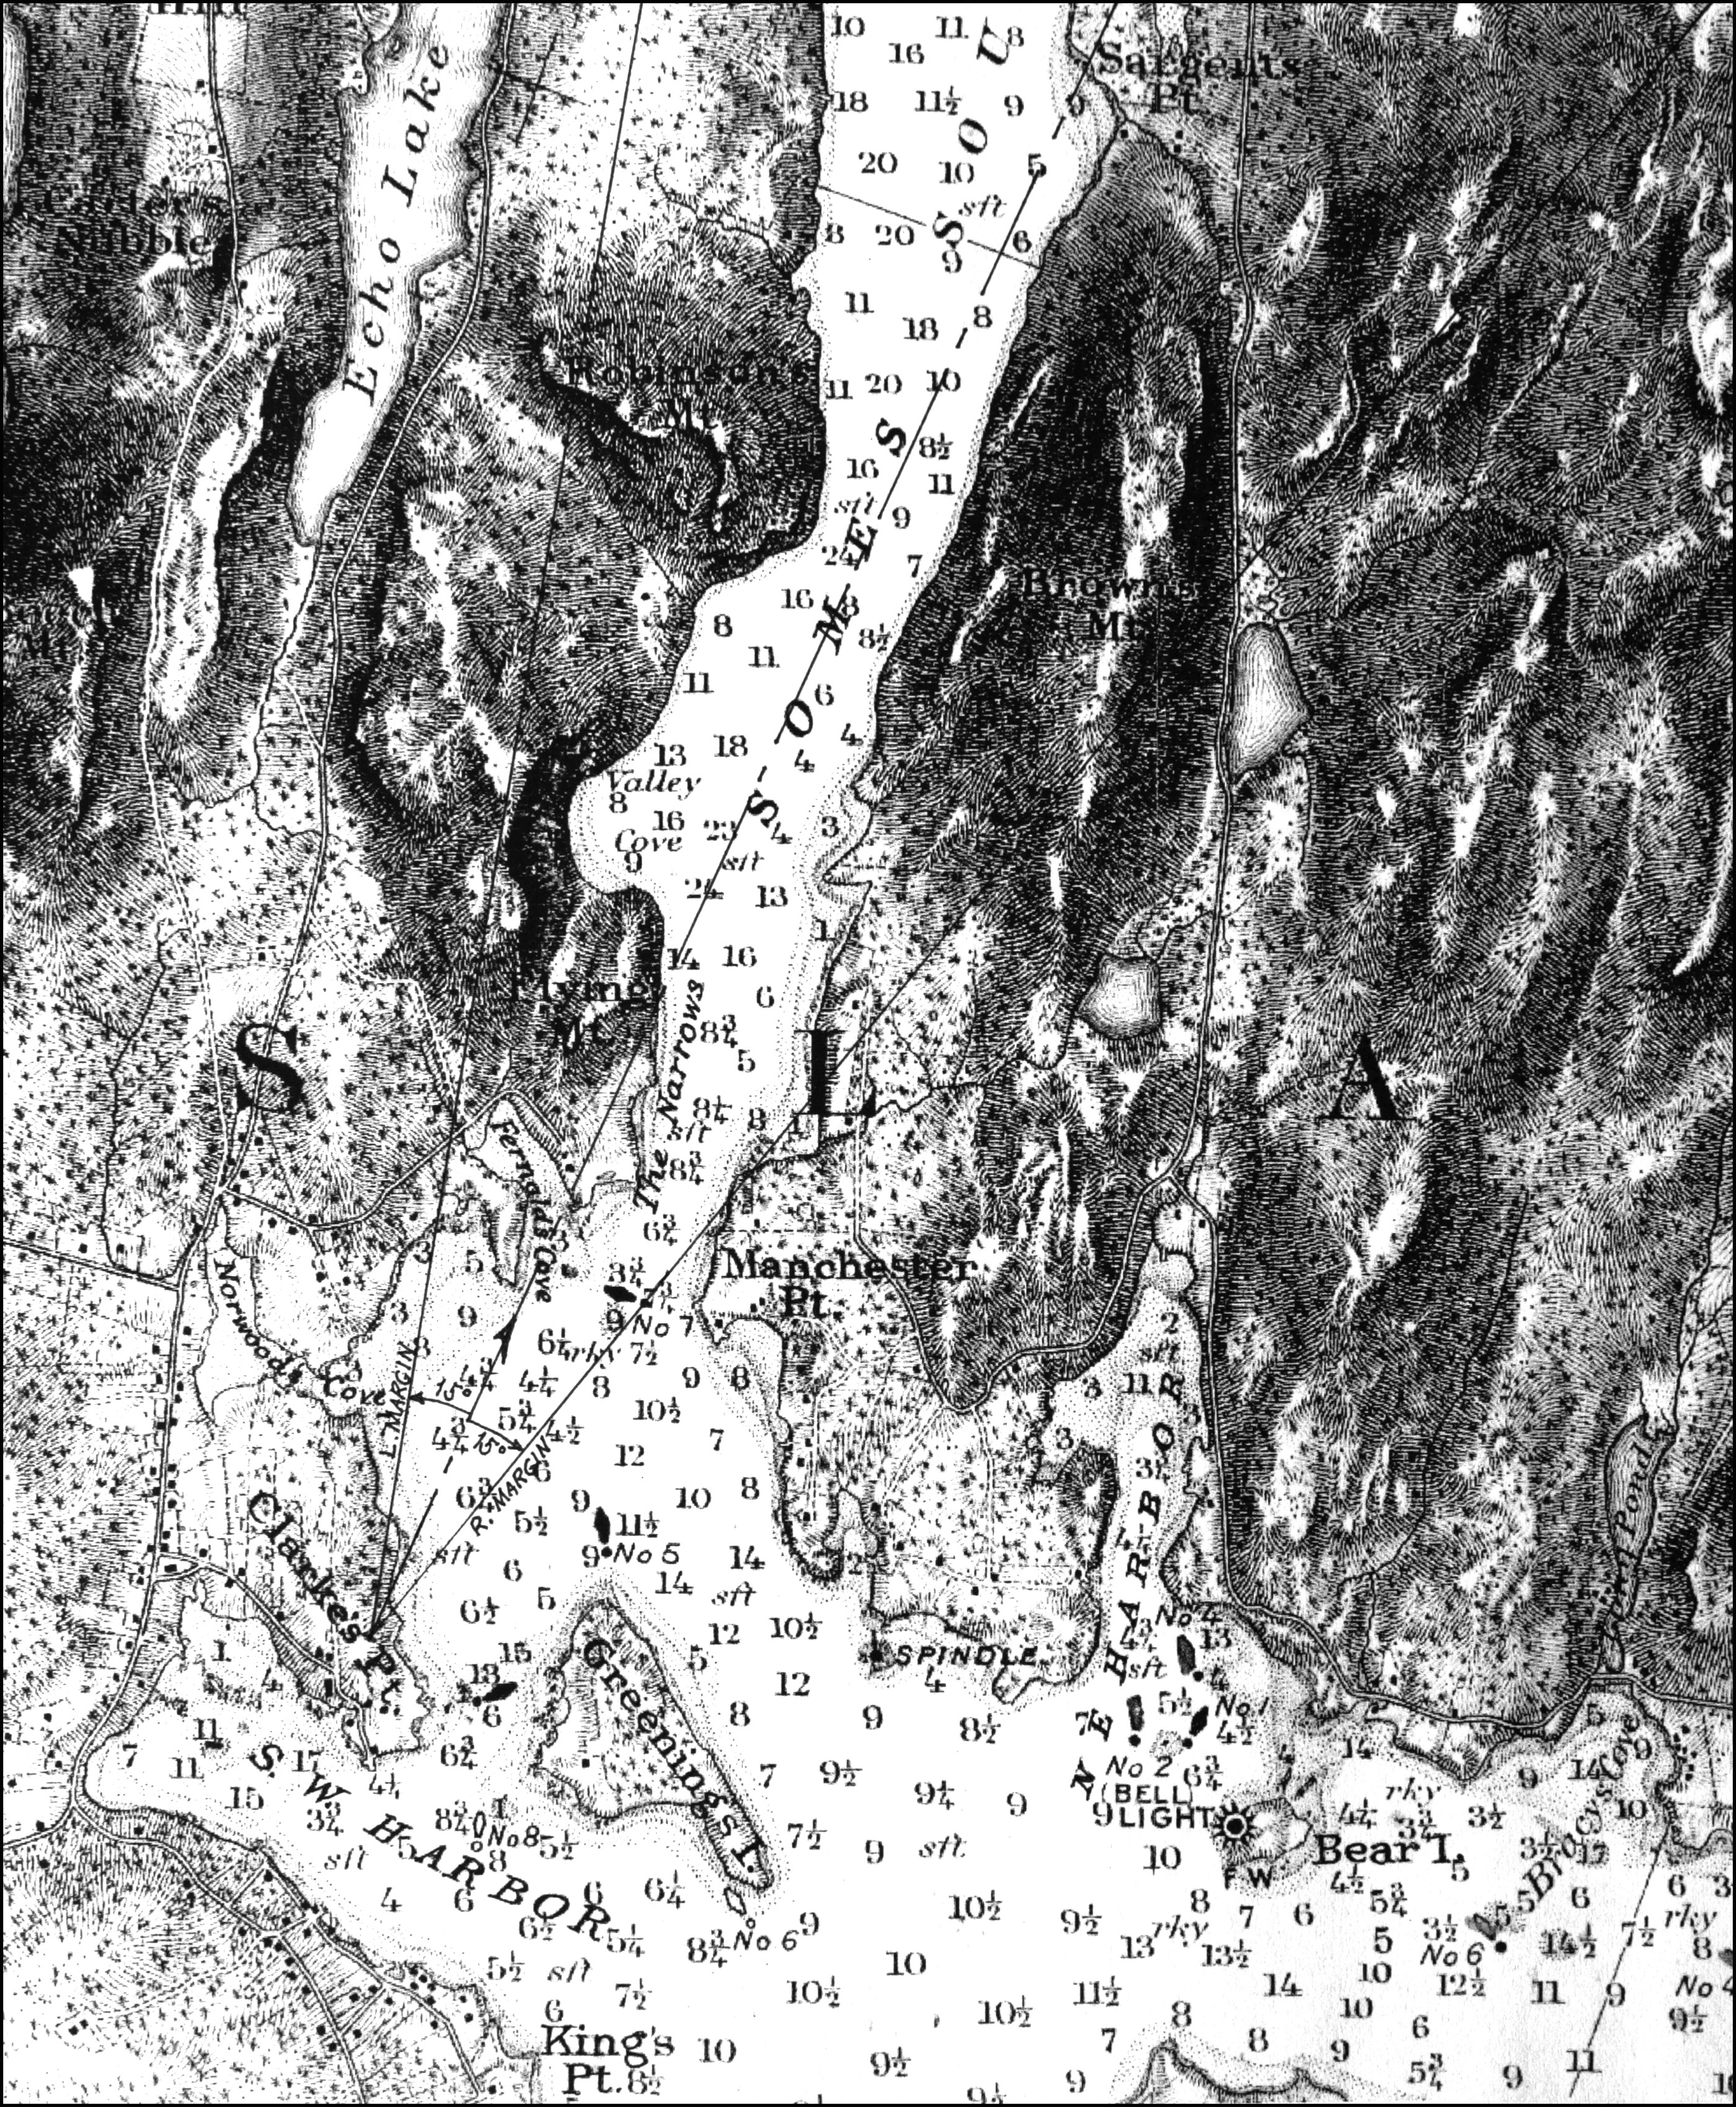 Fitz henry lane entrance of somes sound mount desert maine 1855 viewpoint chart geenschuldenfo Image collections